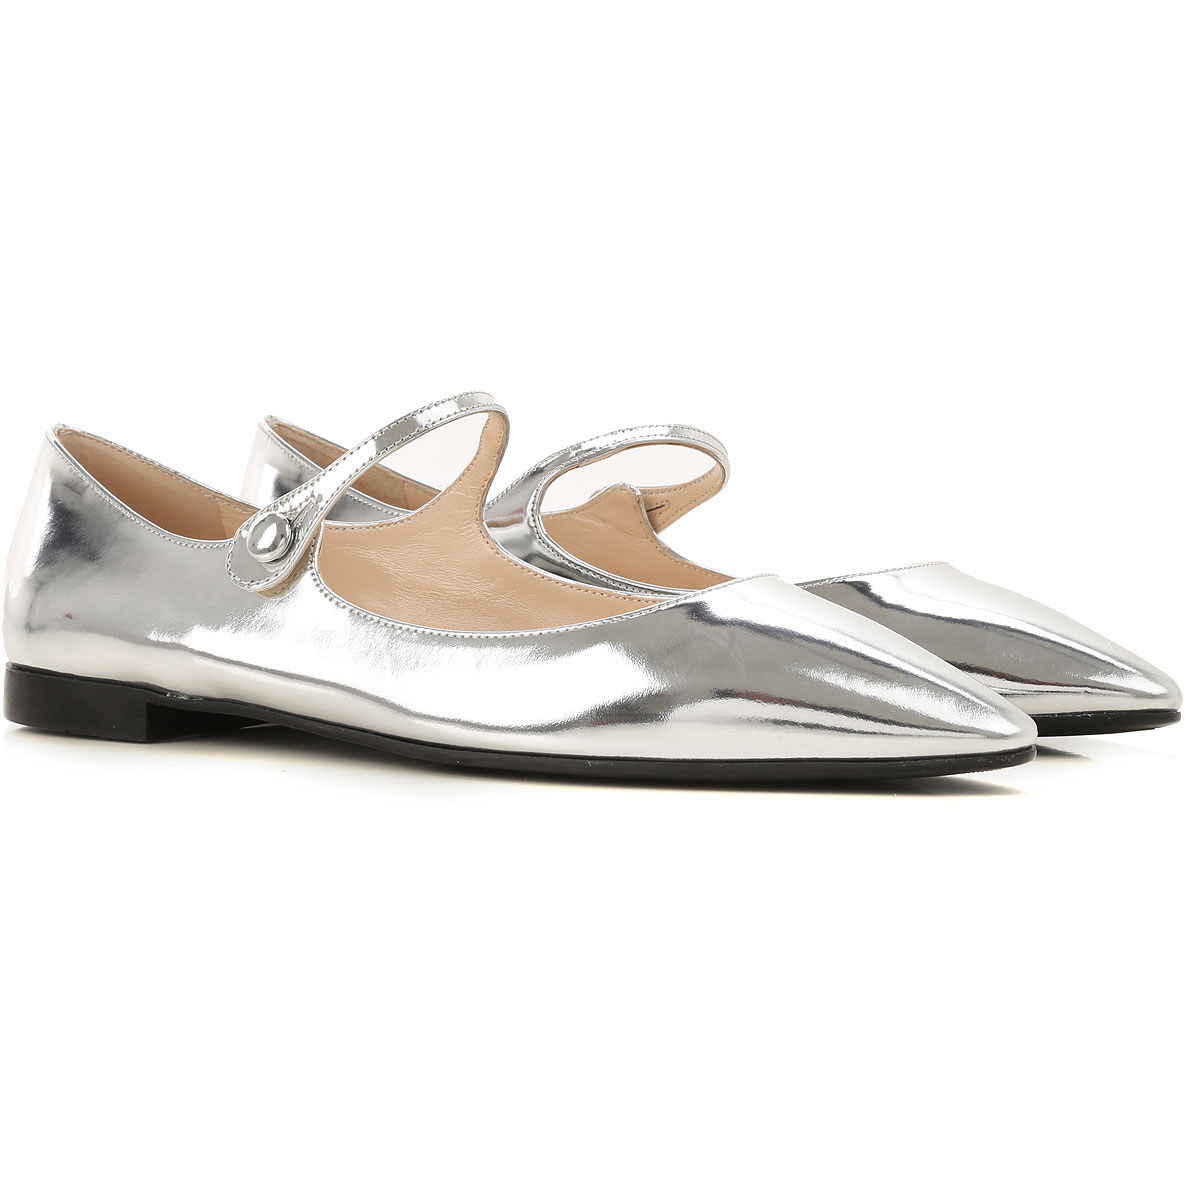 Prada Ballet Flats Ballerina Shoes for Women On Sale, Silver, Patent Leather, 2019, 6 7 8 8.5